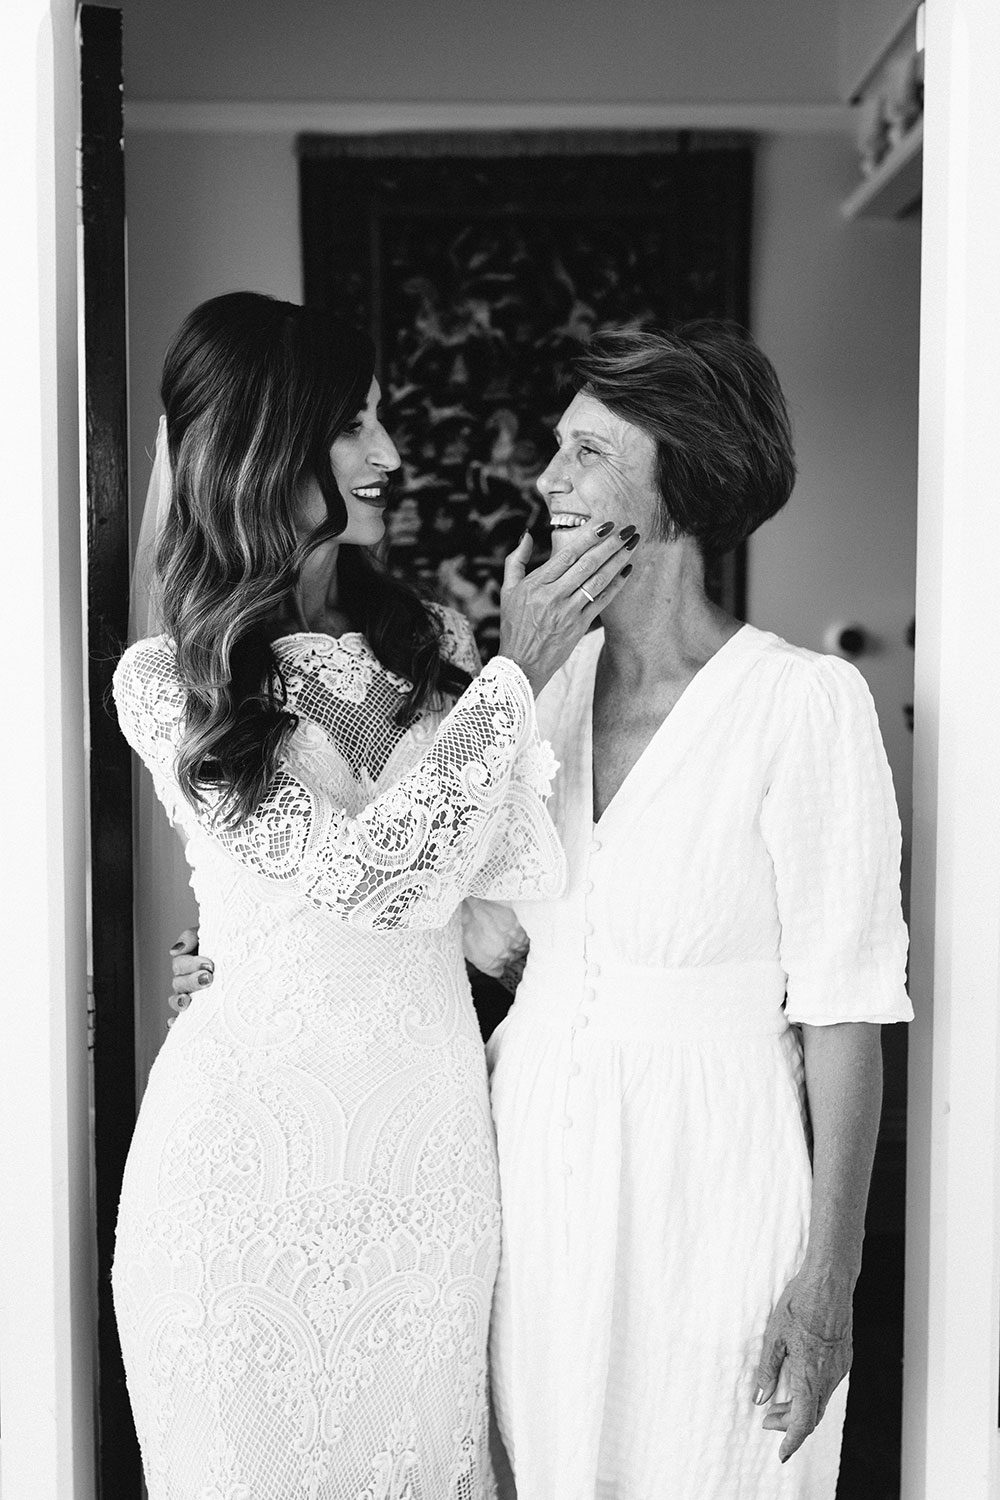 Bride wearing Sabine wedding gown by Auckland wedding dress maker Vinka Design, with French crochet lace detail and long sleeves - black and white with mother